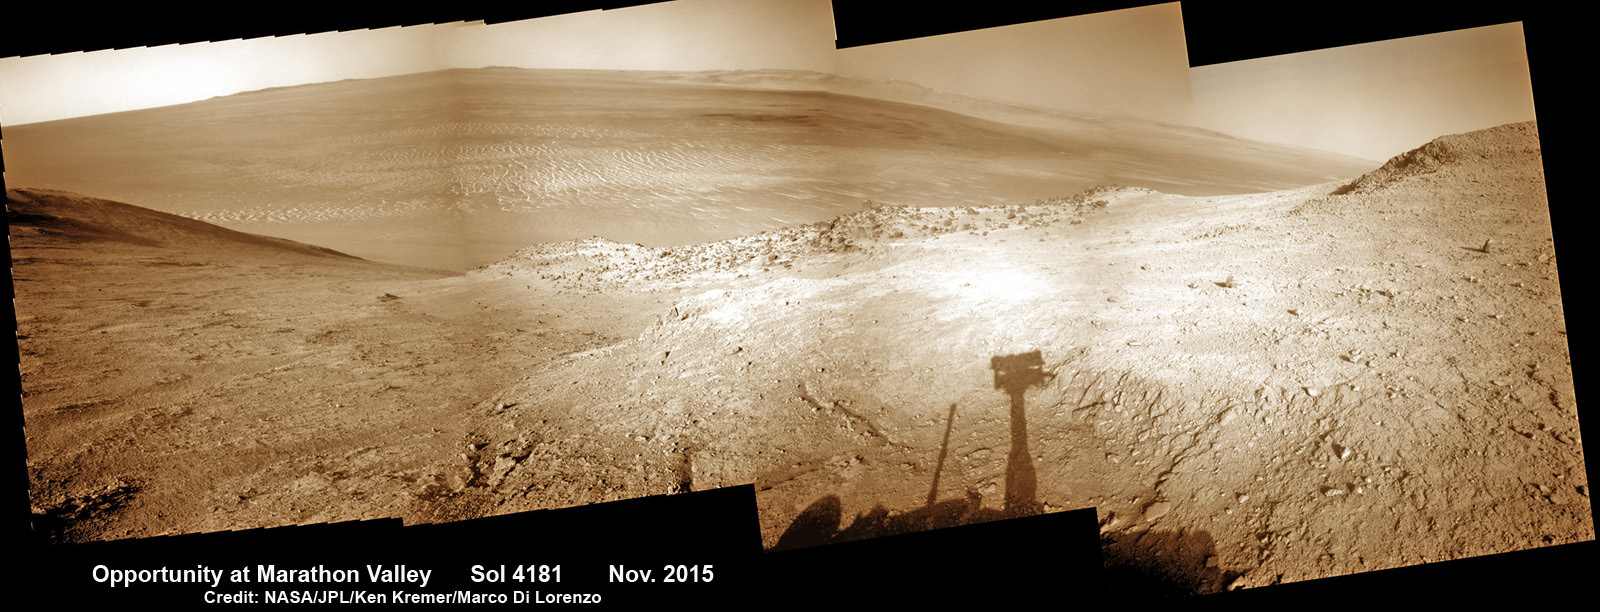 NASA's Opportunity rover peers outwards across to the vast expense of Endeavour Crater from current location descending along steep walled Marathon Valley in early November 2015. Marathon Valley holds significant deposits of water altered clay minerals holding clues to the planets watery past.  Shadow of Pancam Mast assembly and robots deck visible at right. This navcam camera photo mosaic was assembled from images taken on Sol 4181 (Oct. 29, 2015) and colorized. Credit: NASA/JPL/Cornell/Ken Kremer/kenkremer.com/Marco Di Lorenzo